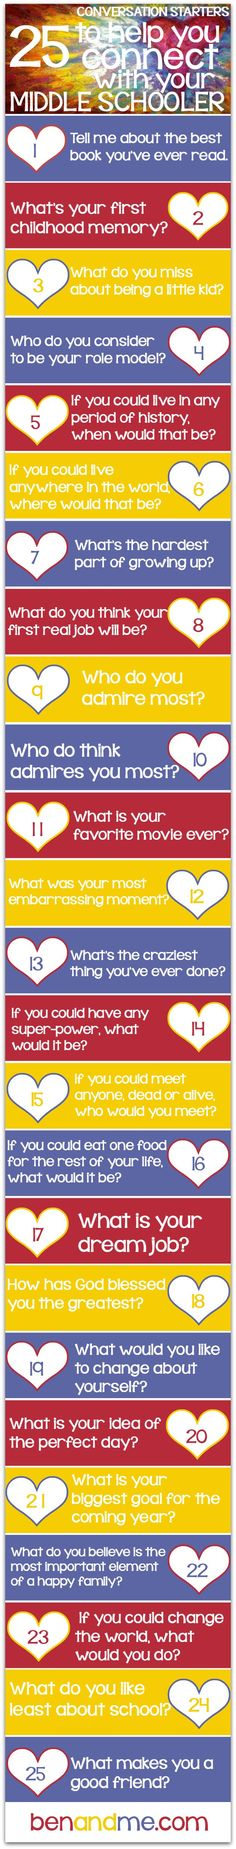 Conversation starters for parents and teens